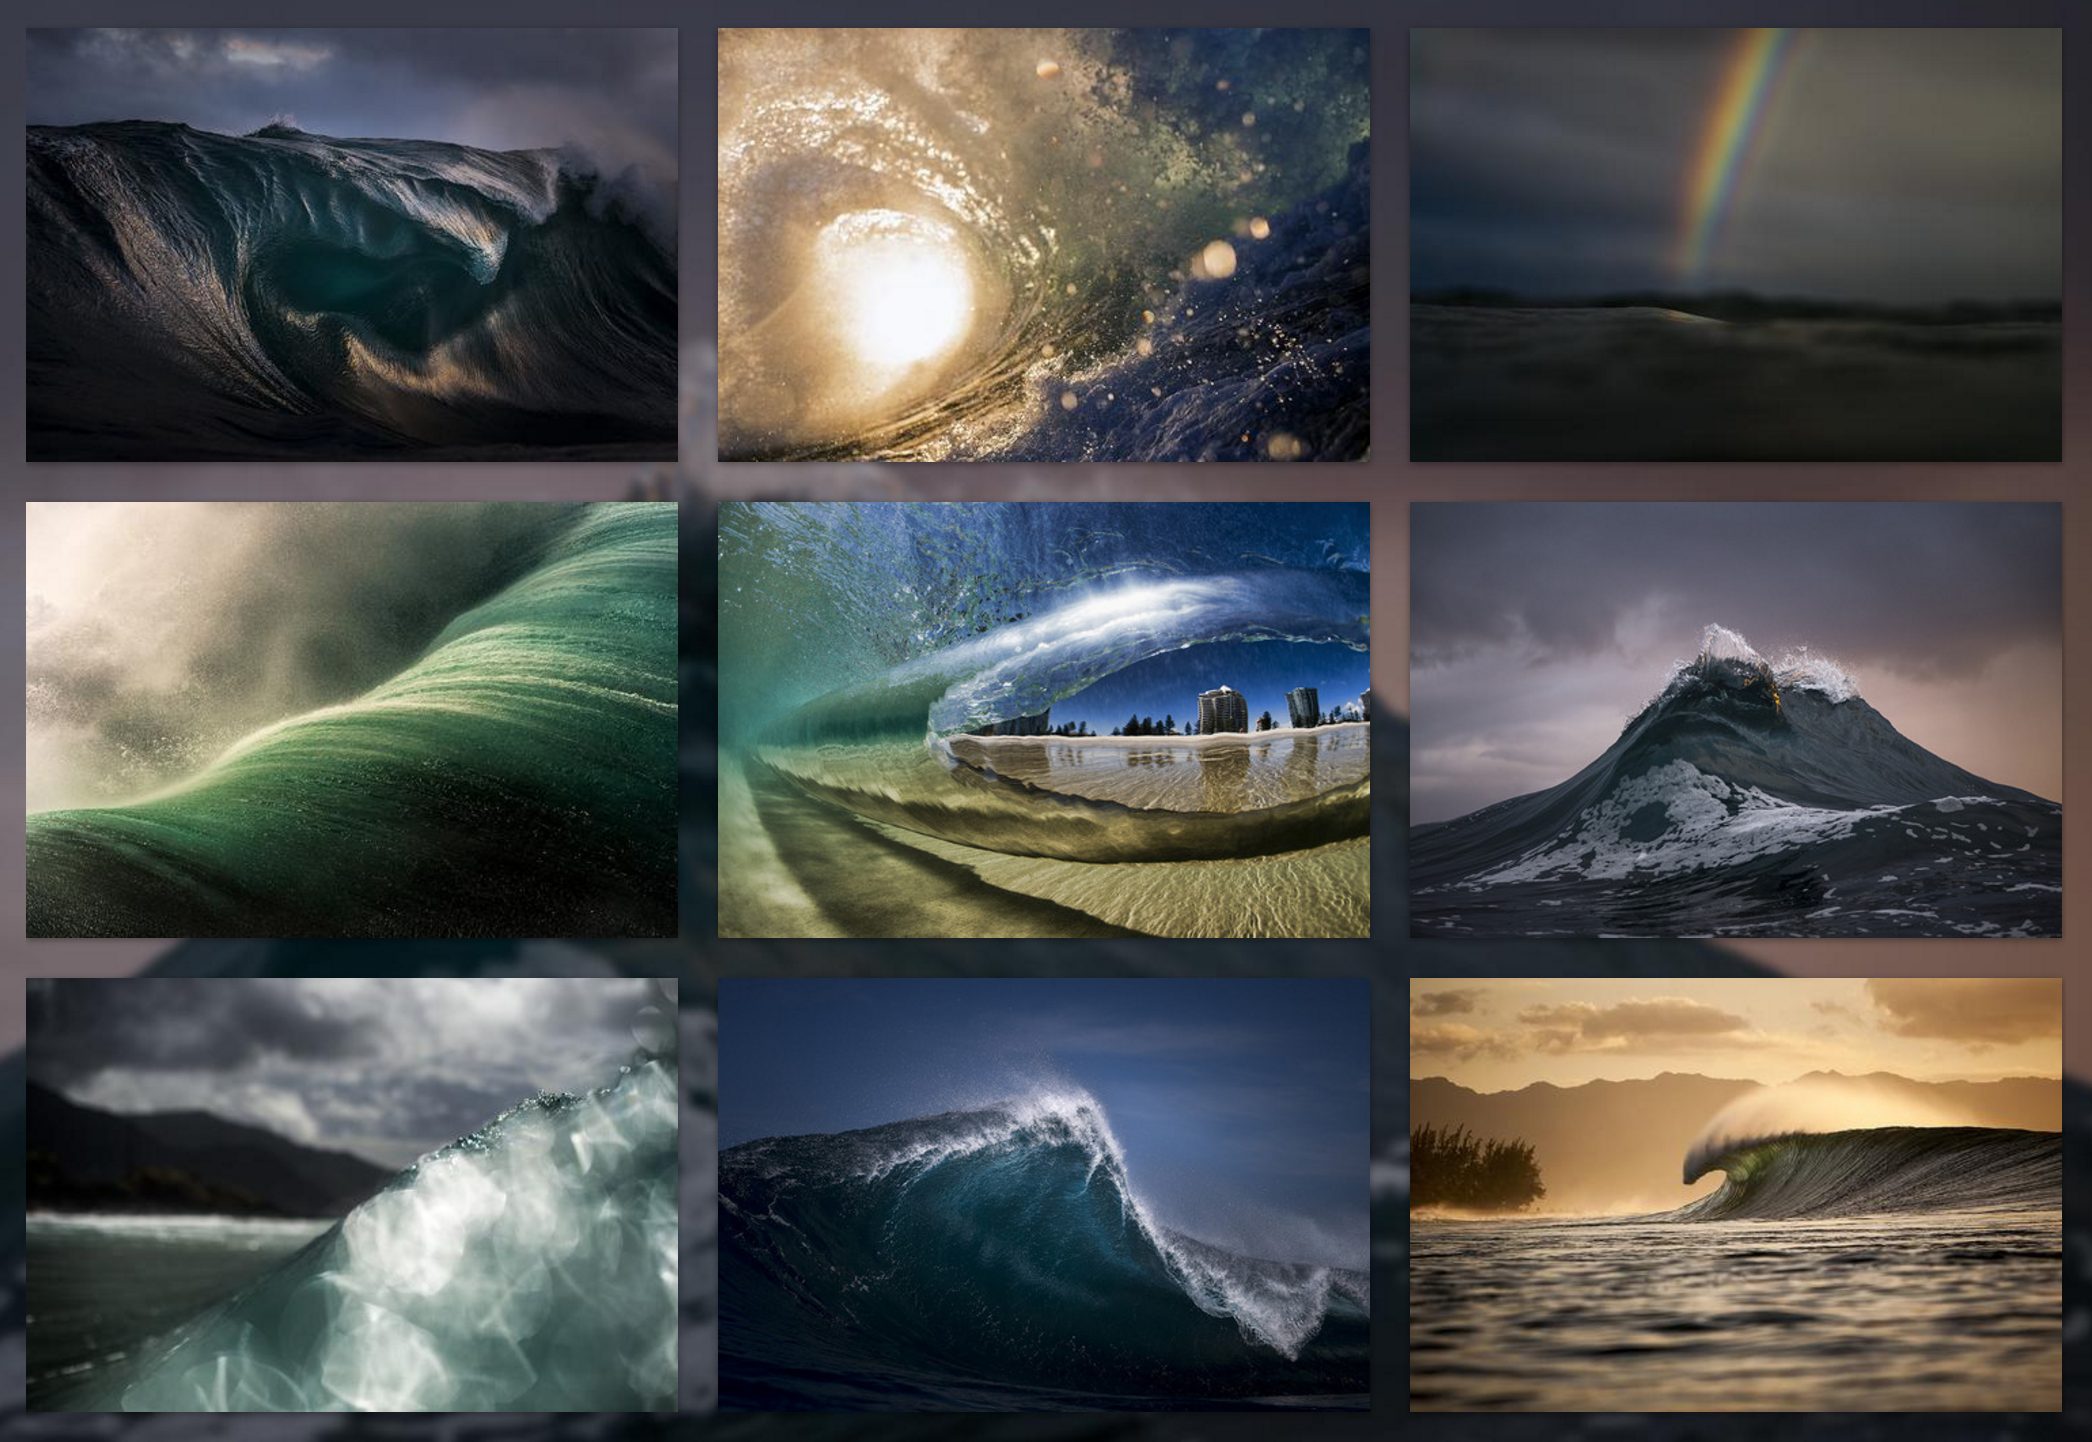 Photography by & courtesy of Ray Collins